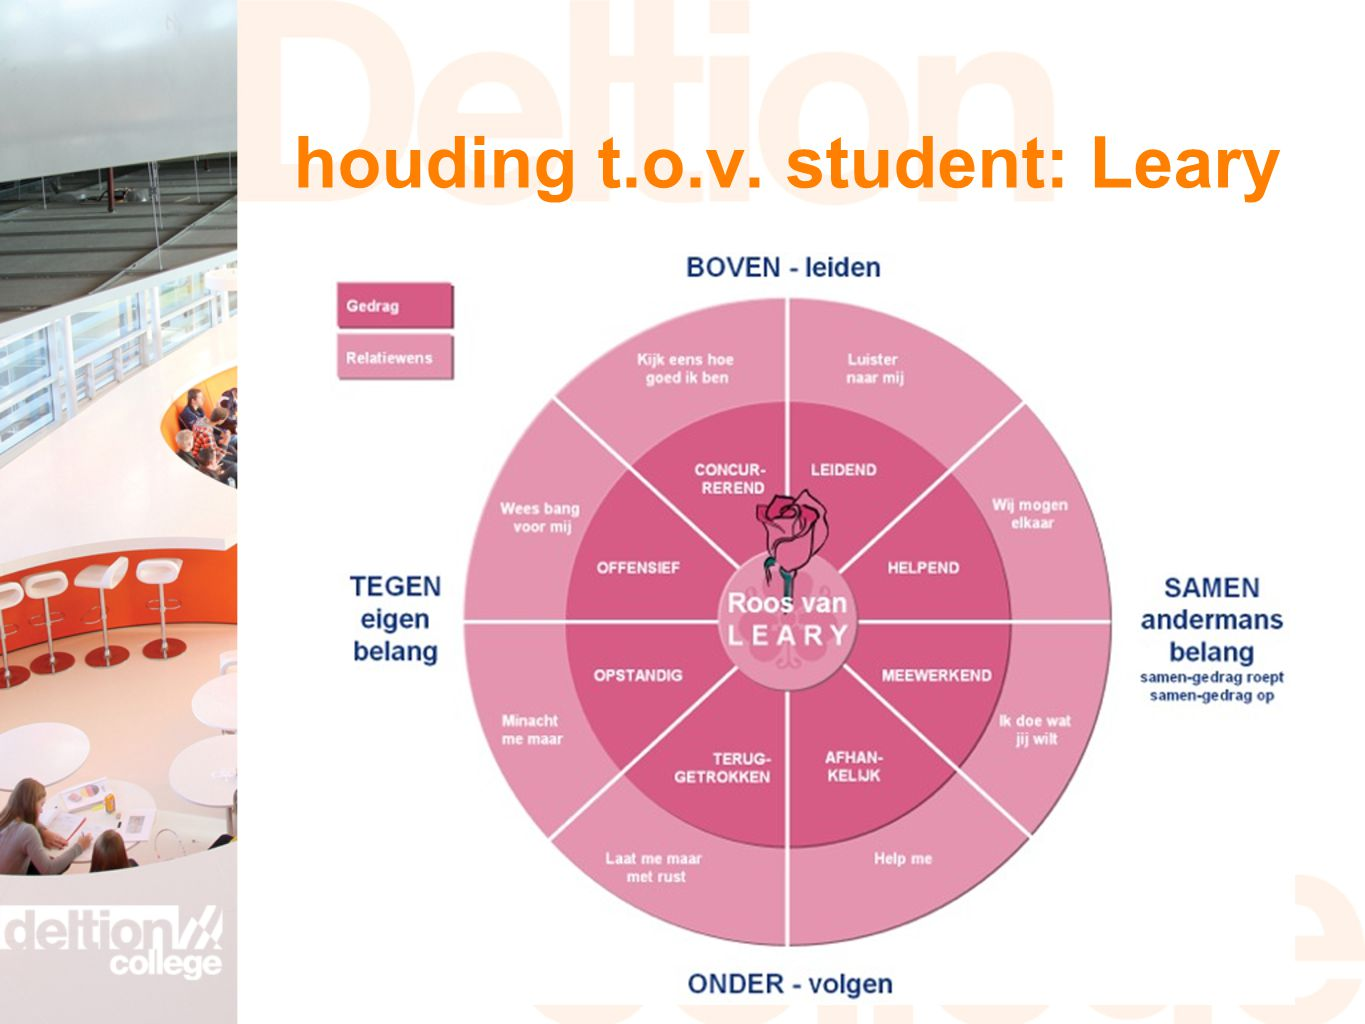 houding t.o.v. student: Leary